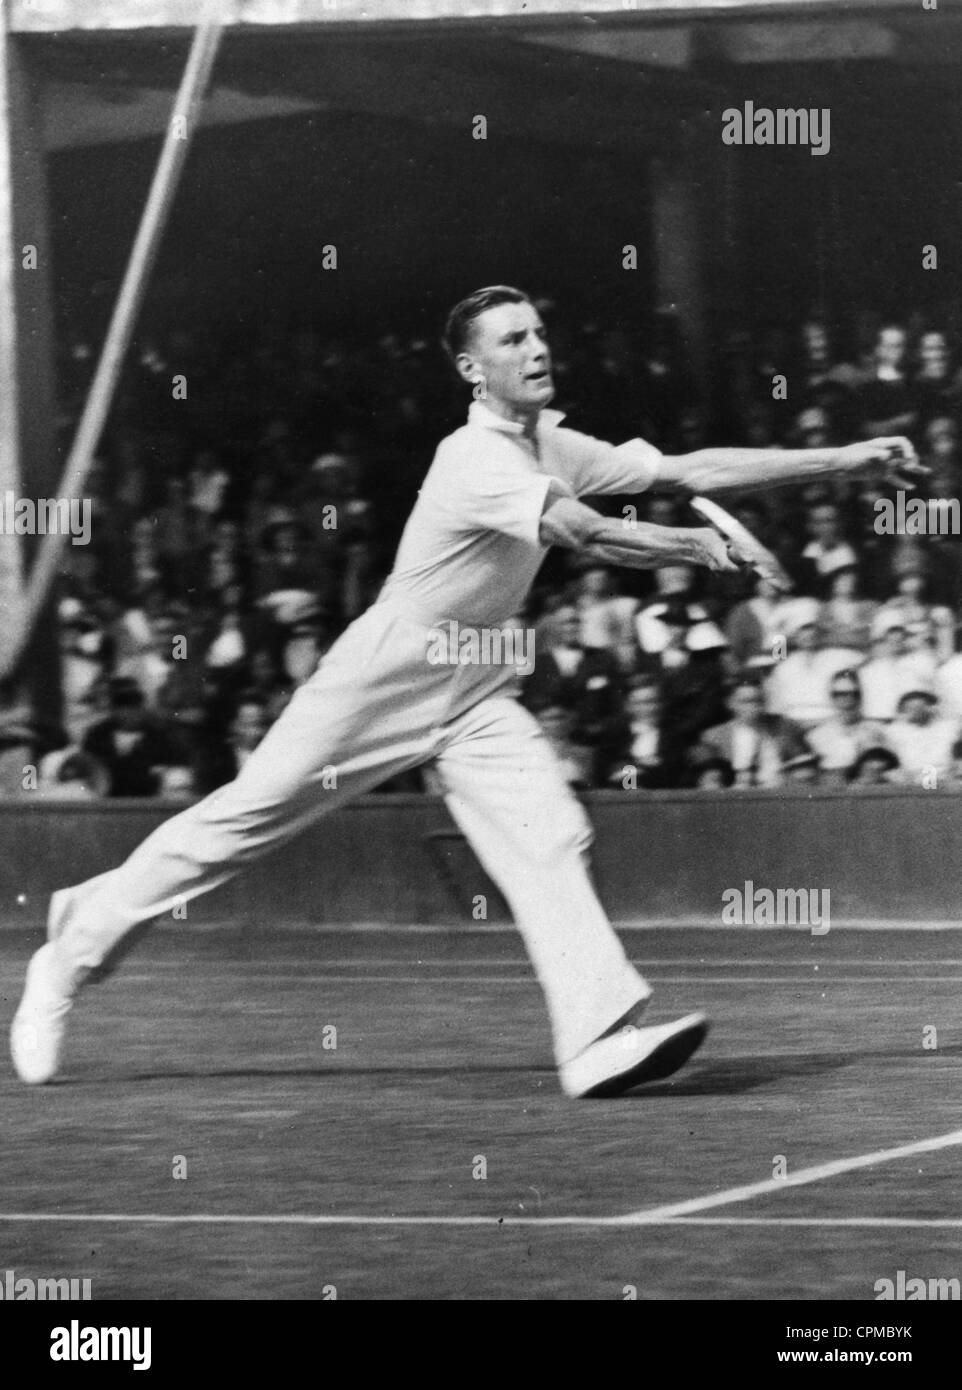 Fred Perry plays a tennis match in Wimbledon, 1931 - Stock Image